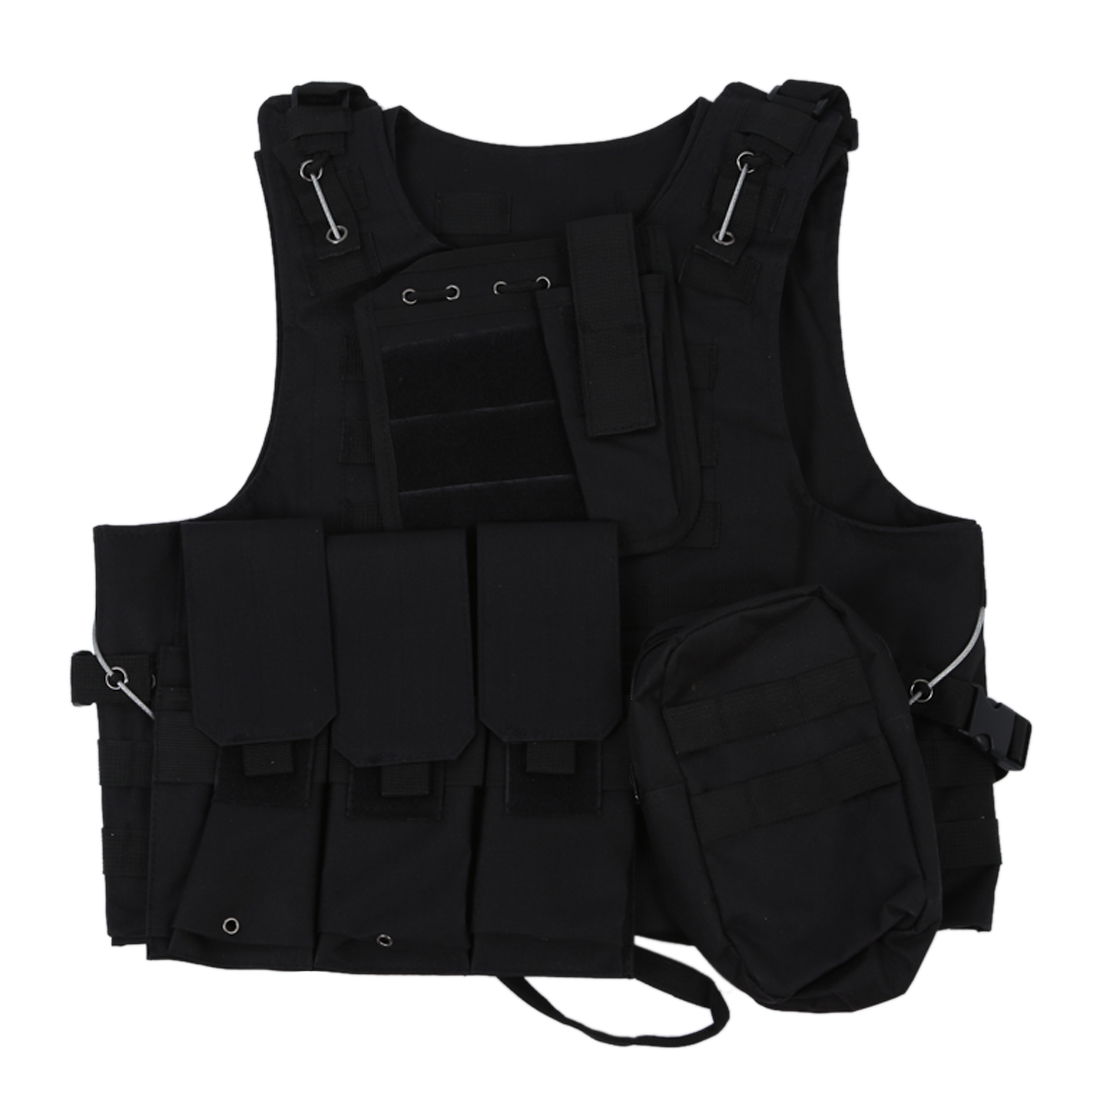 THZY Vest Nylon Jacket Black MOLLE Combat Airsoft Paintball by THZY